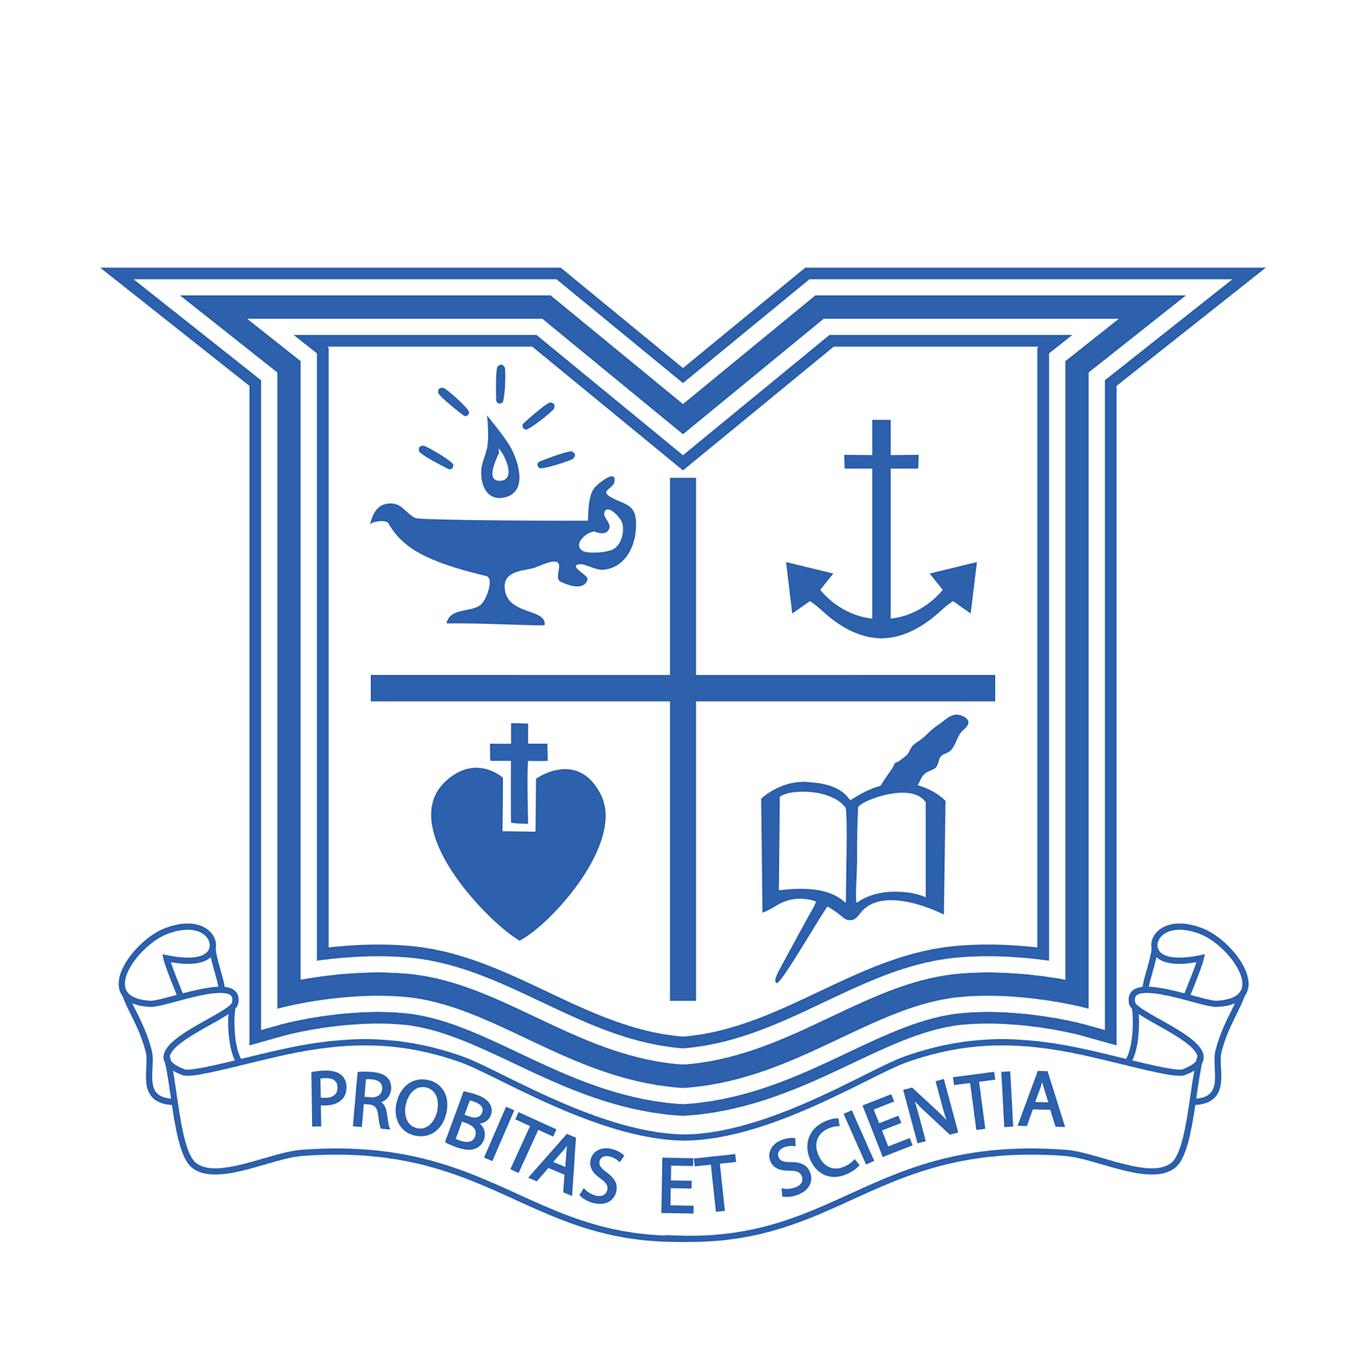 The Cathedral High School Crest